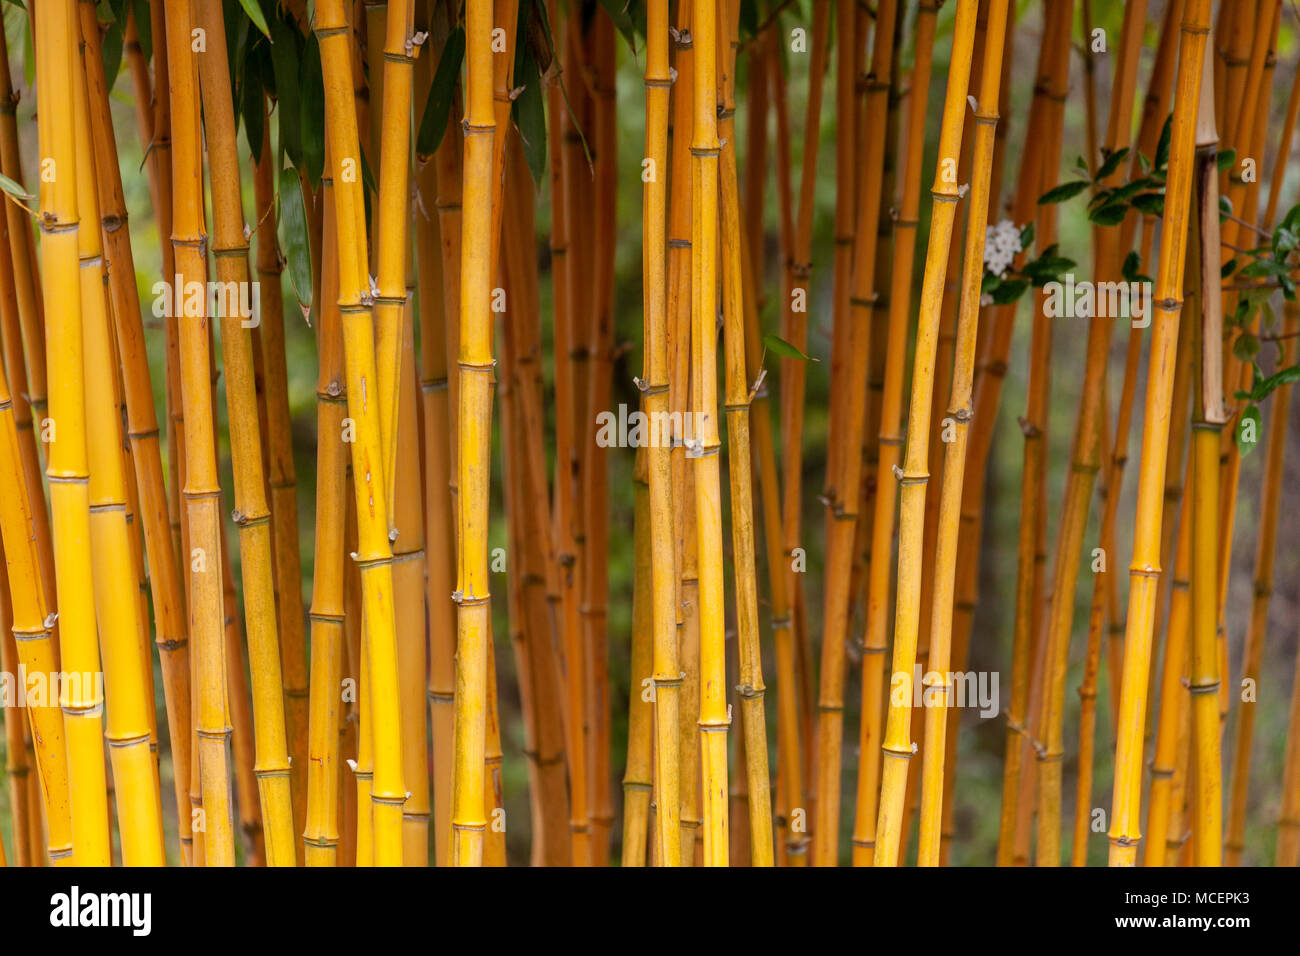 Bamboo Shoots in a cluster - Stock Image